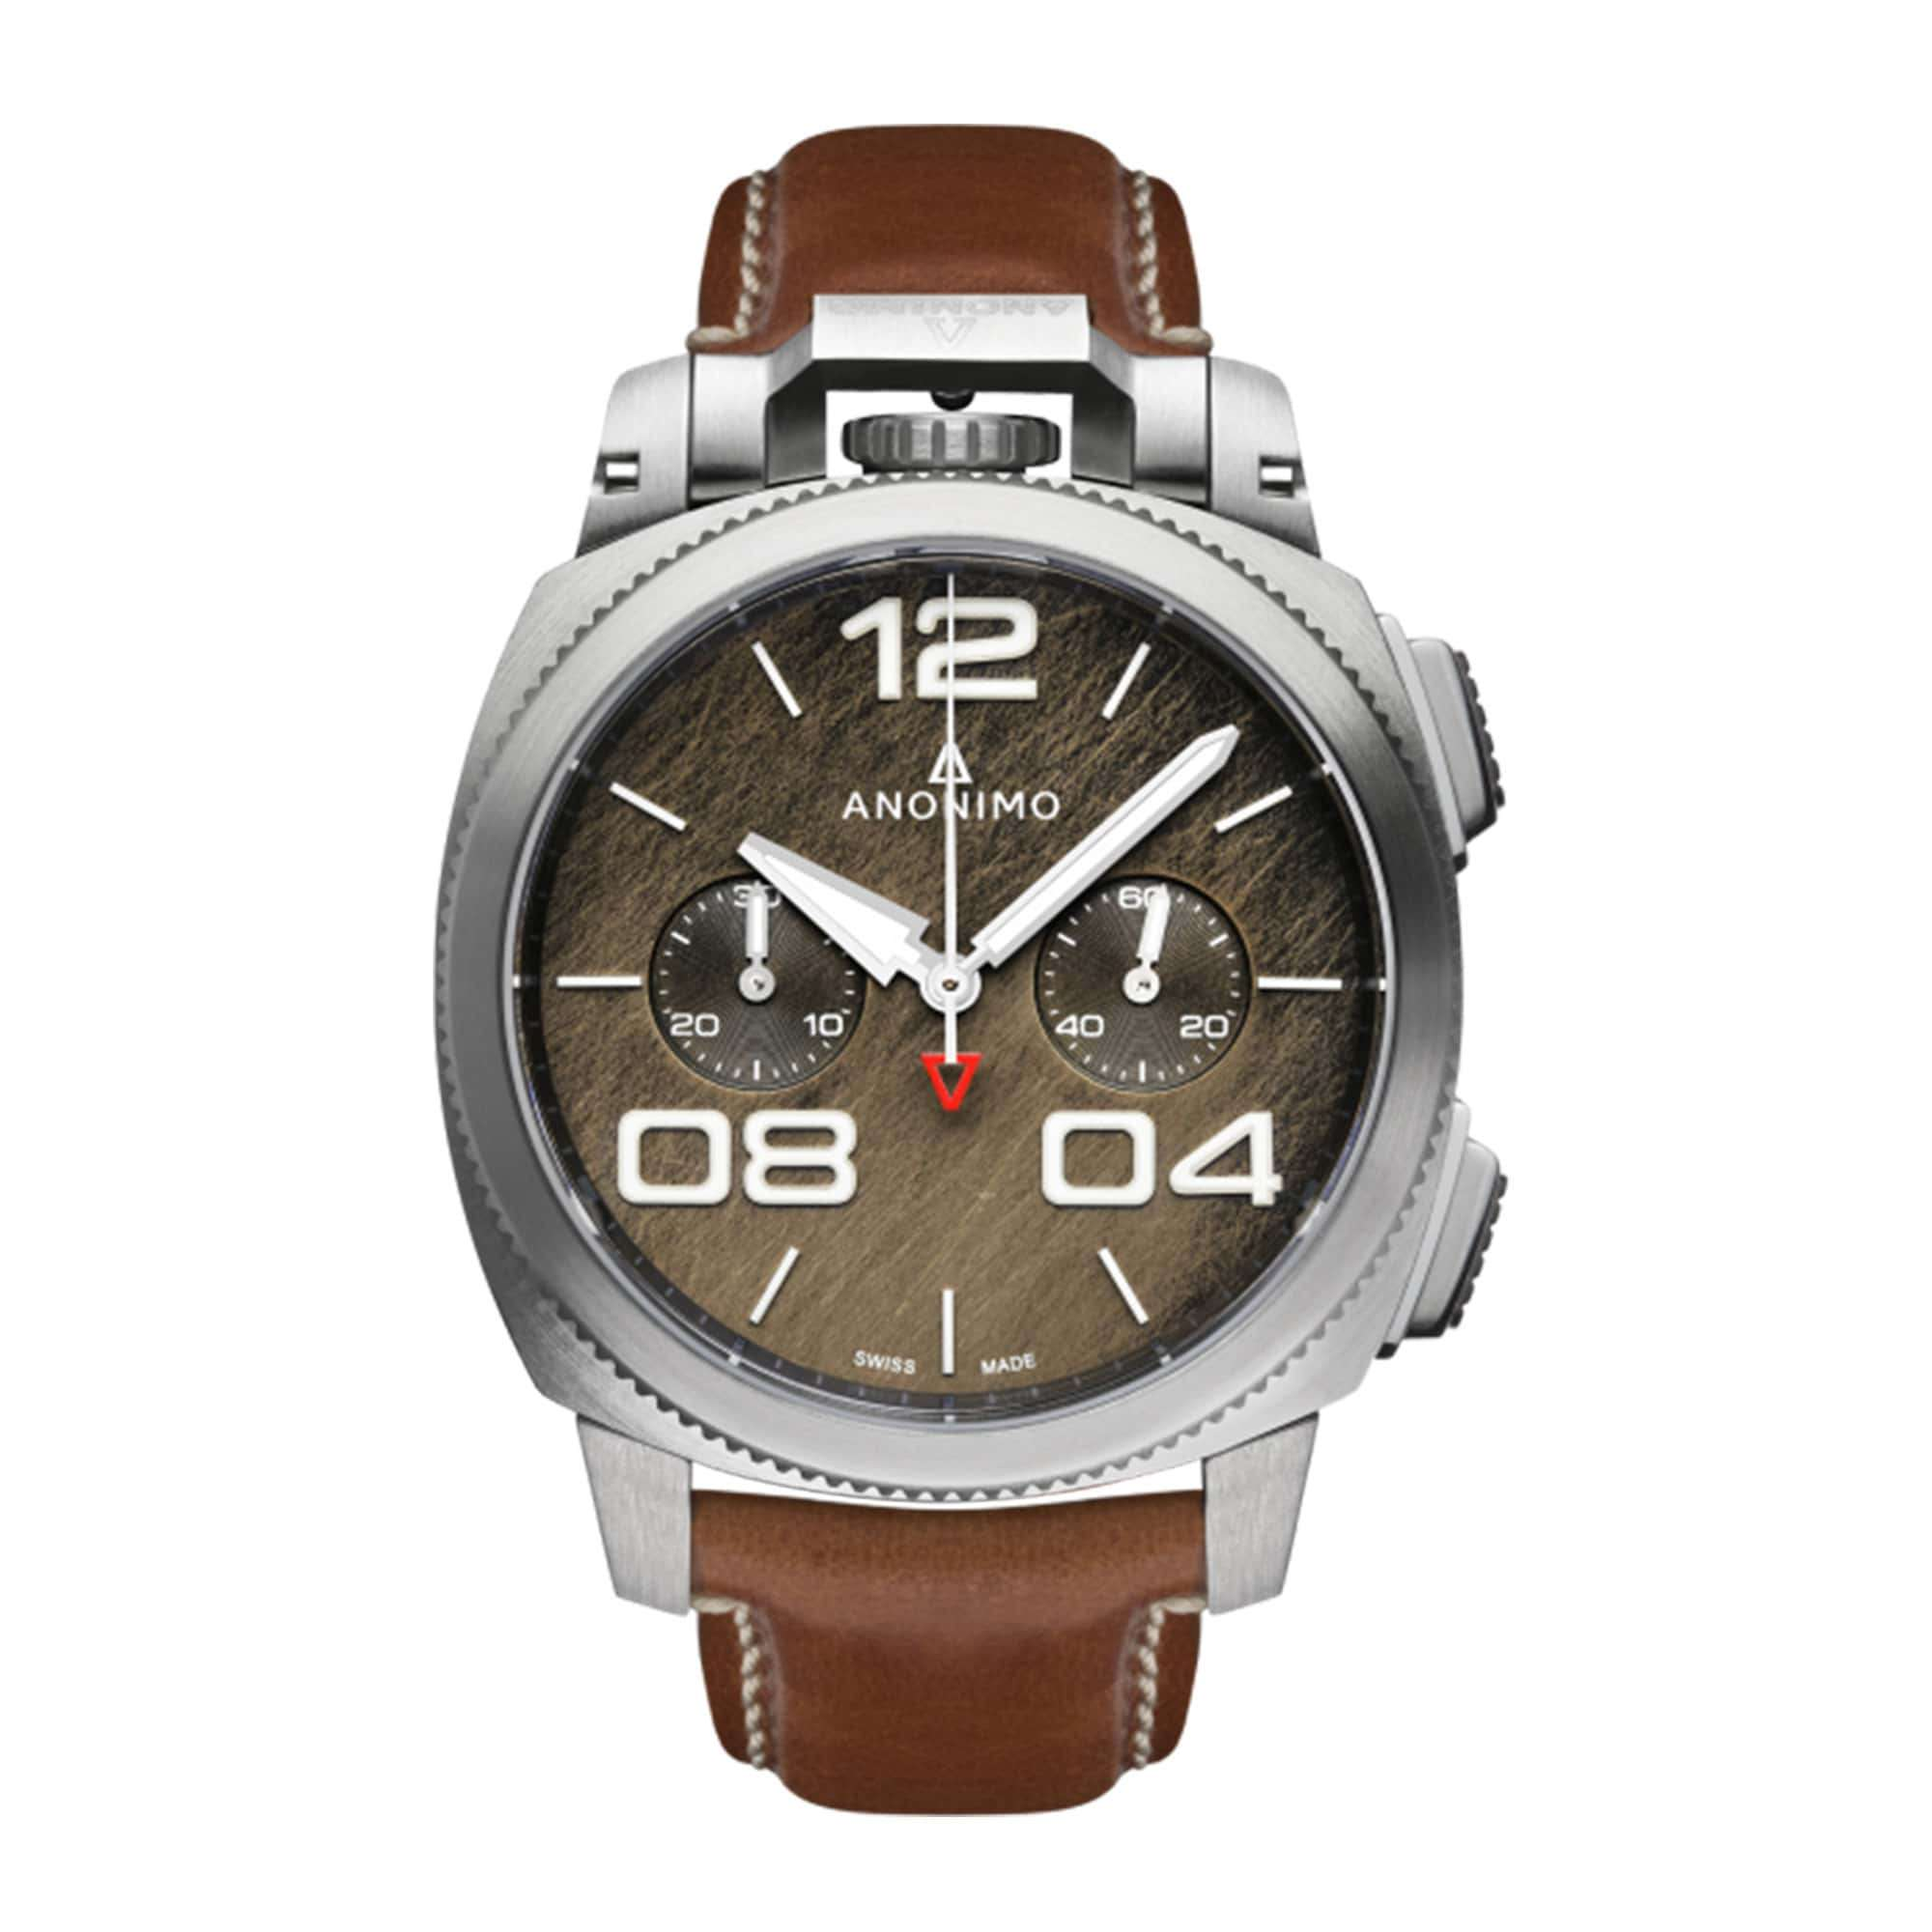 Anonimo Militare Chrono Stainless Steel AM-1120.01.002.A02 – Swiss Time